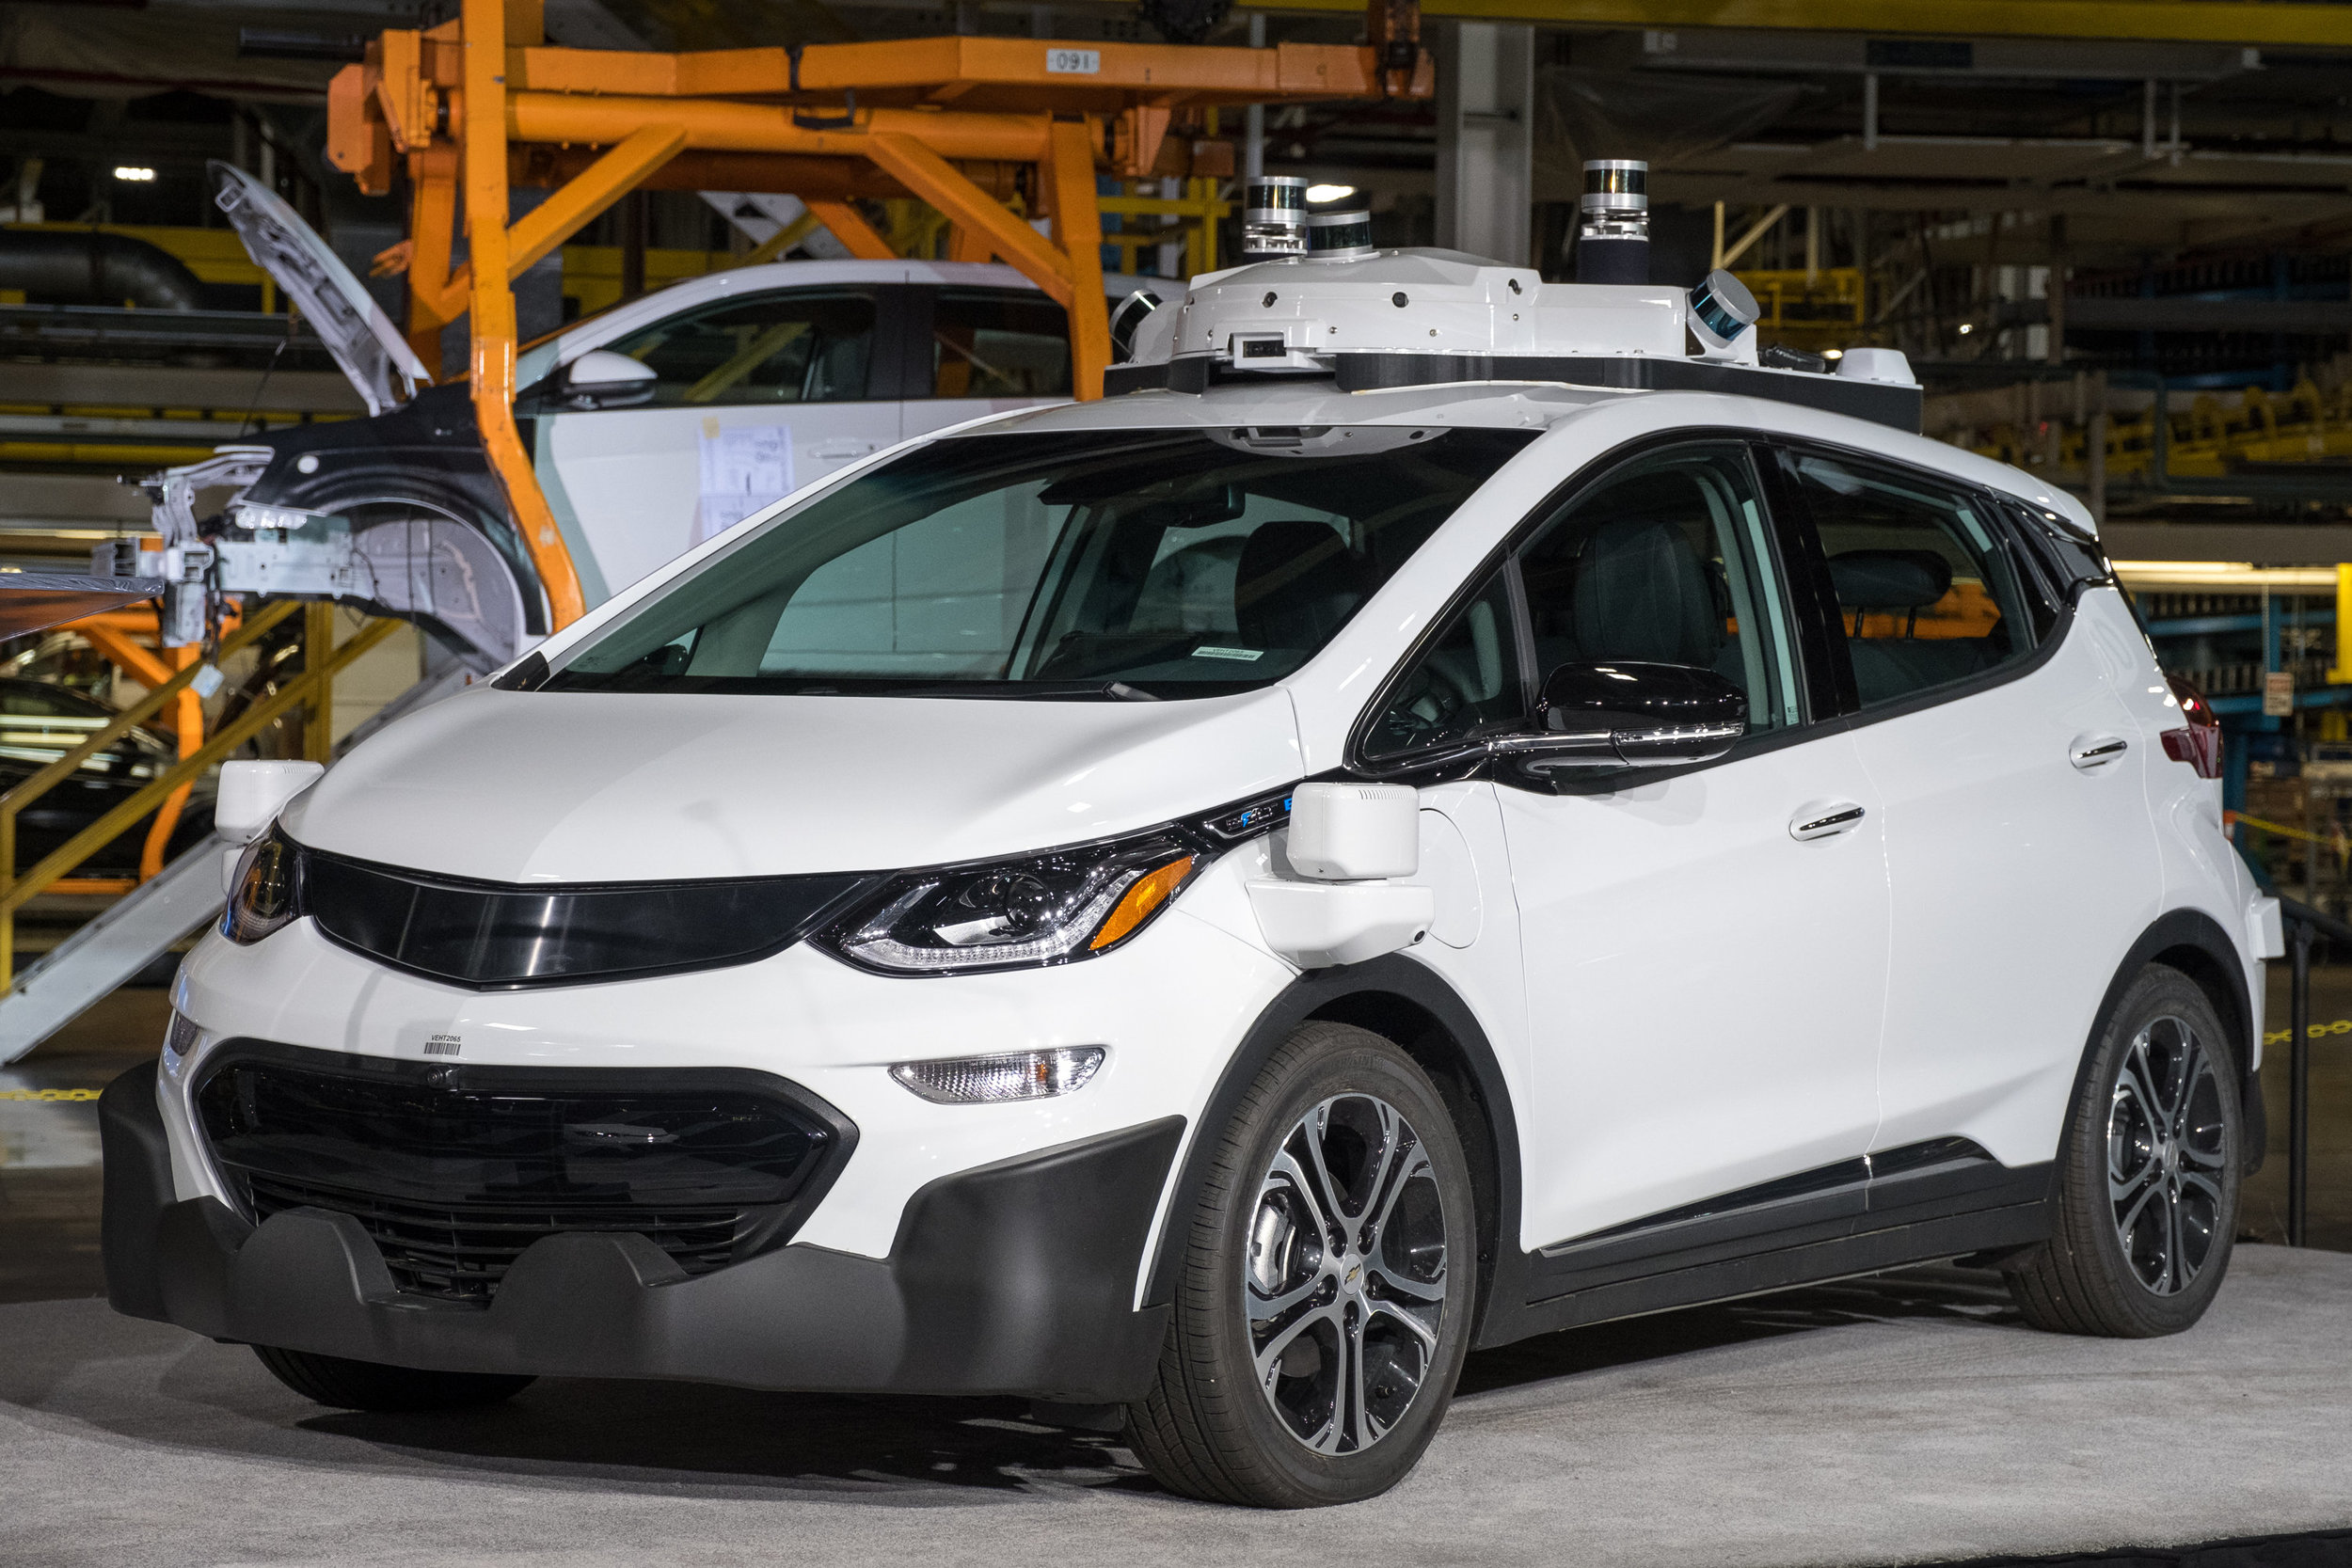 GM is producing Self-Driving Chevy Bolt EV Test Vehicles. Image credit - GM.